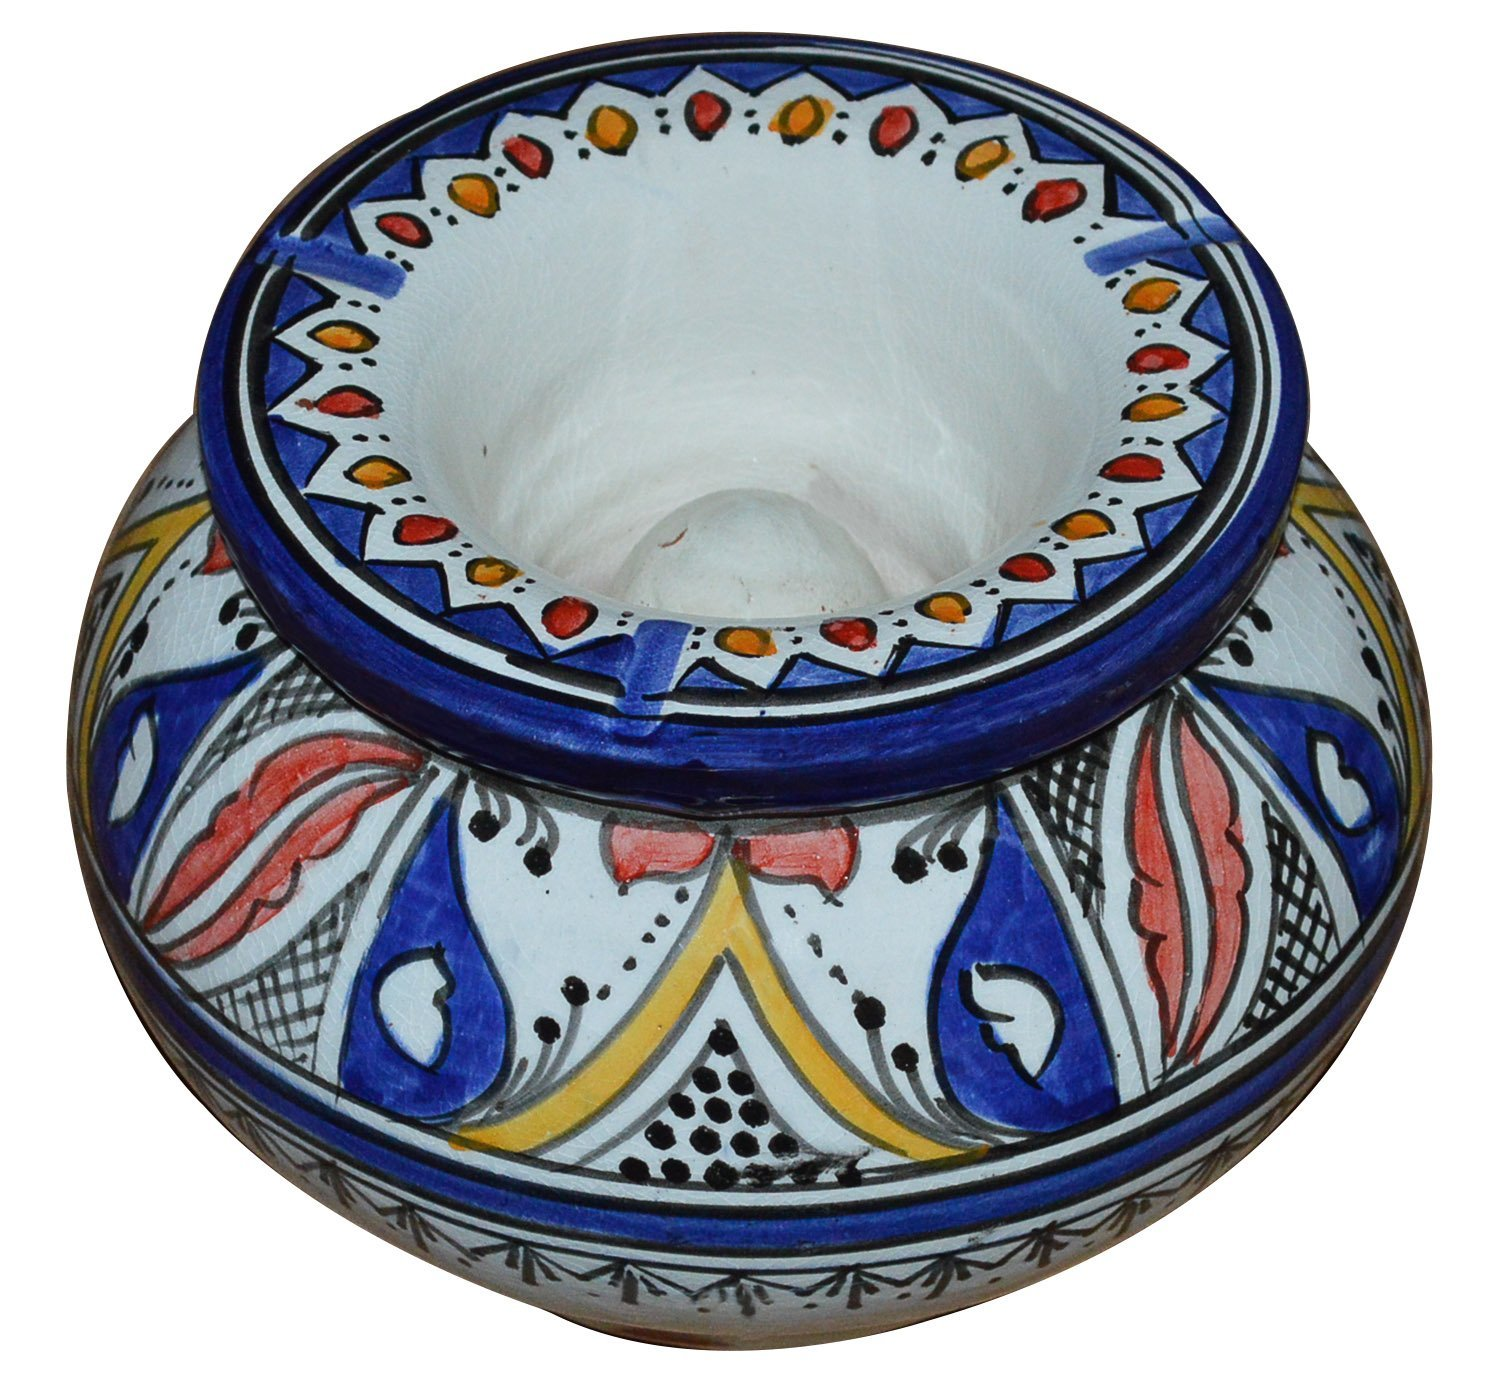 Ceramic Ashtrays Moroccan Handmade Smokeless Cigar Exquisite Design with Vivid Colors X-Large by Ceramic Ashtrays